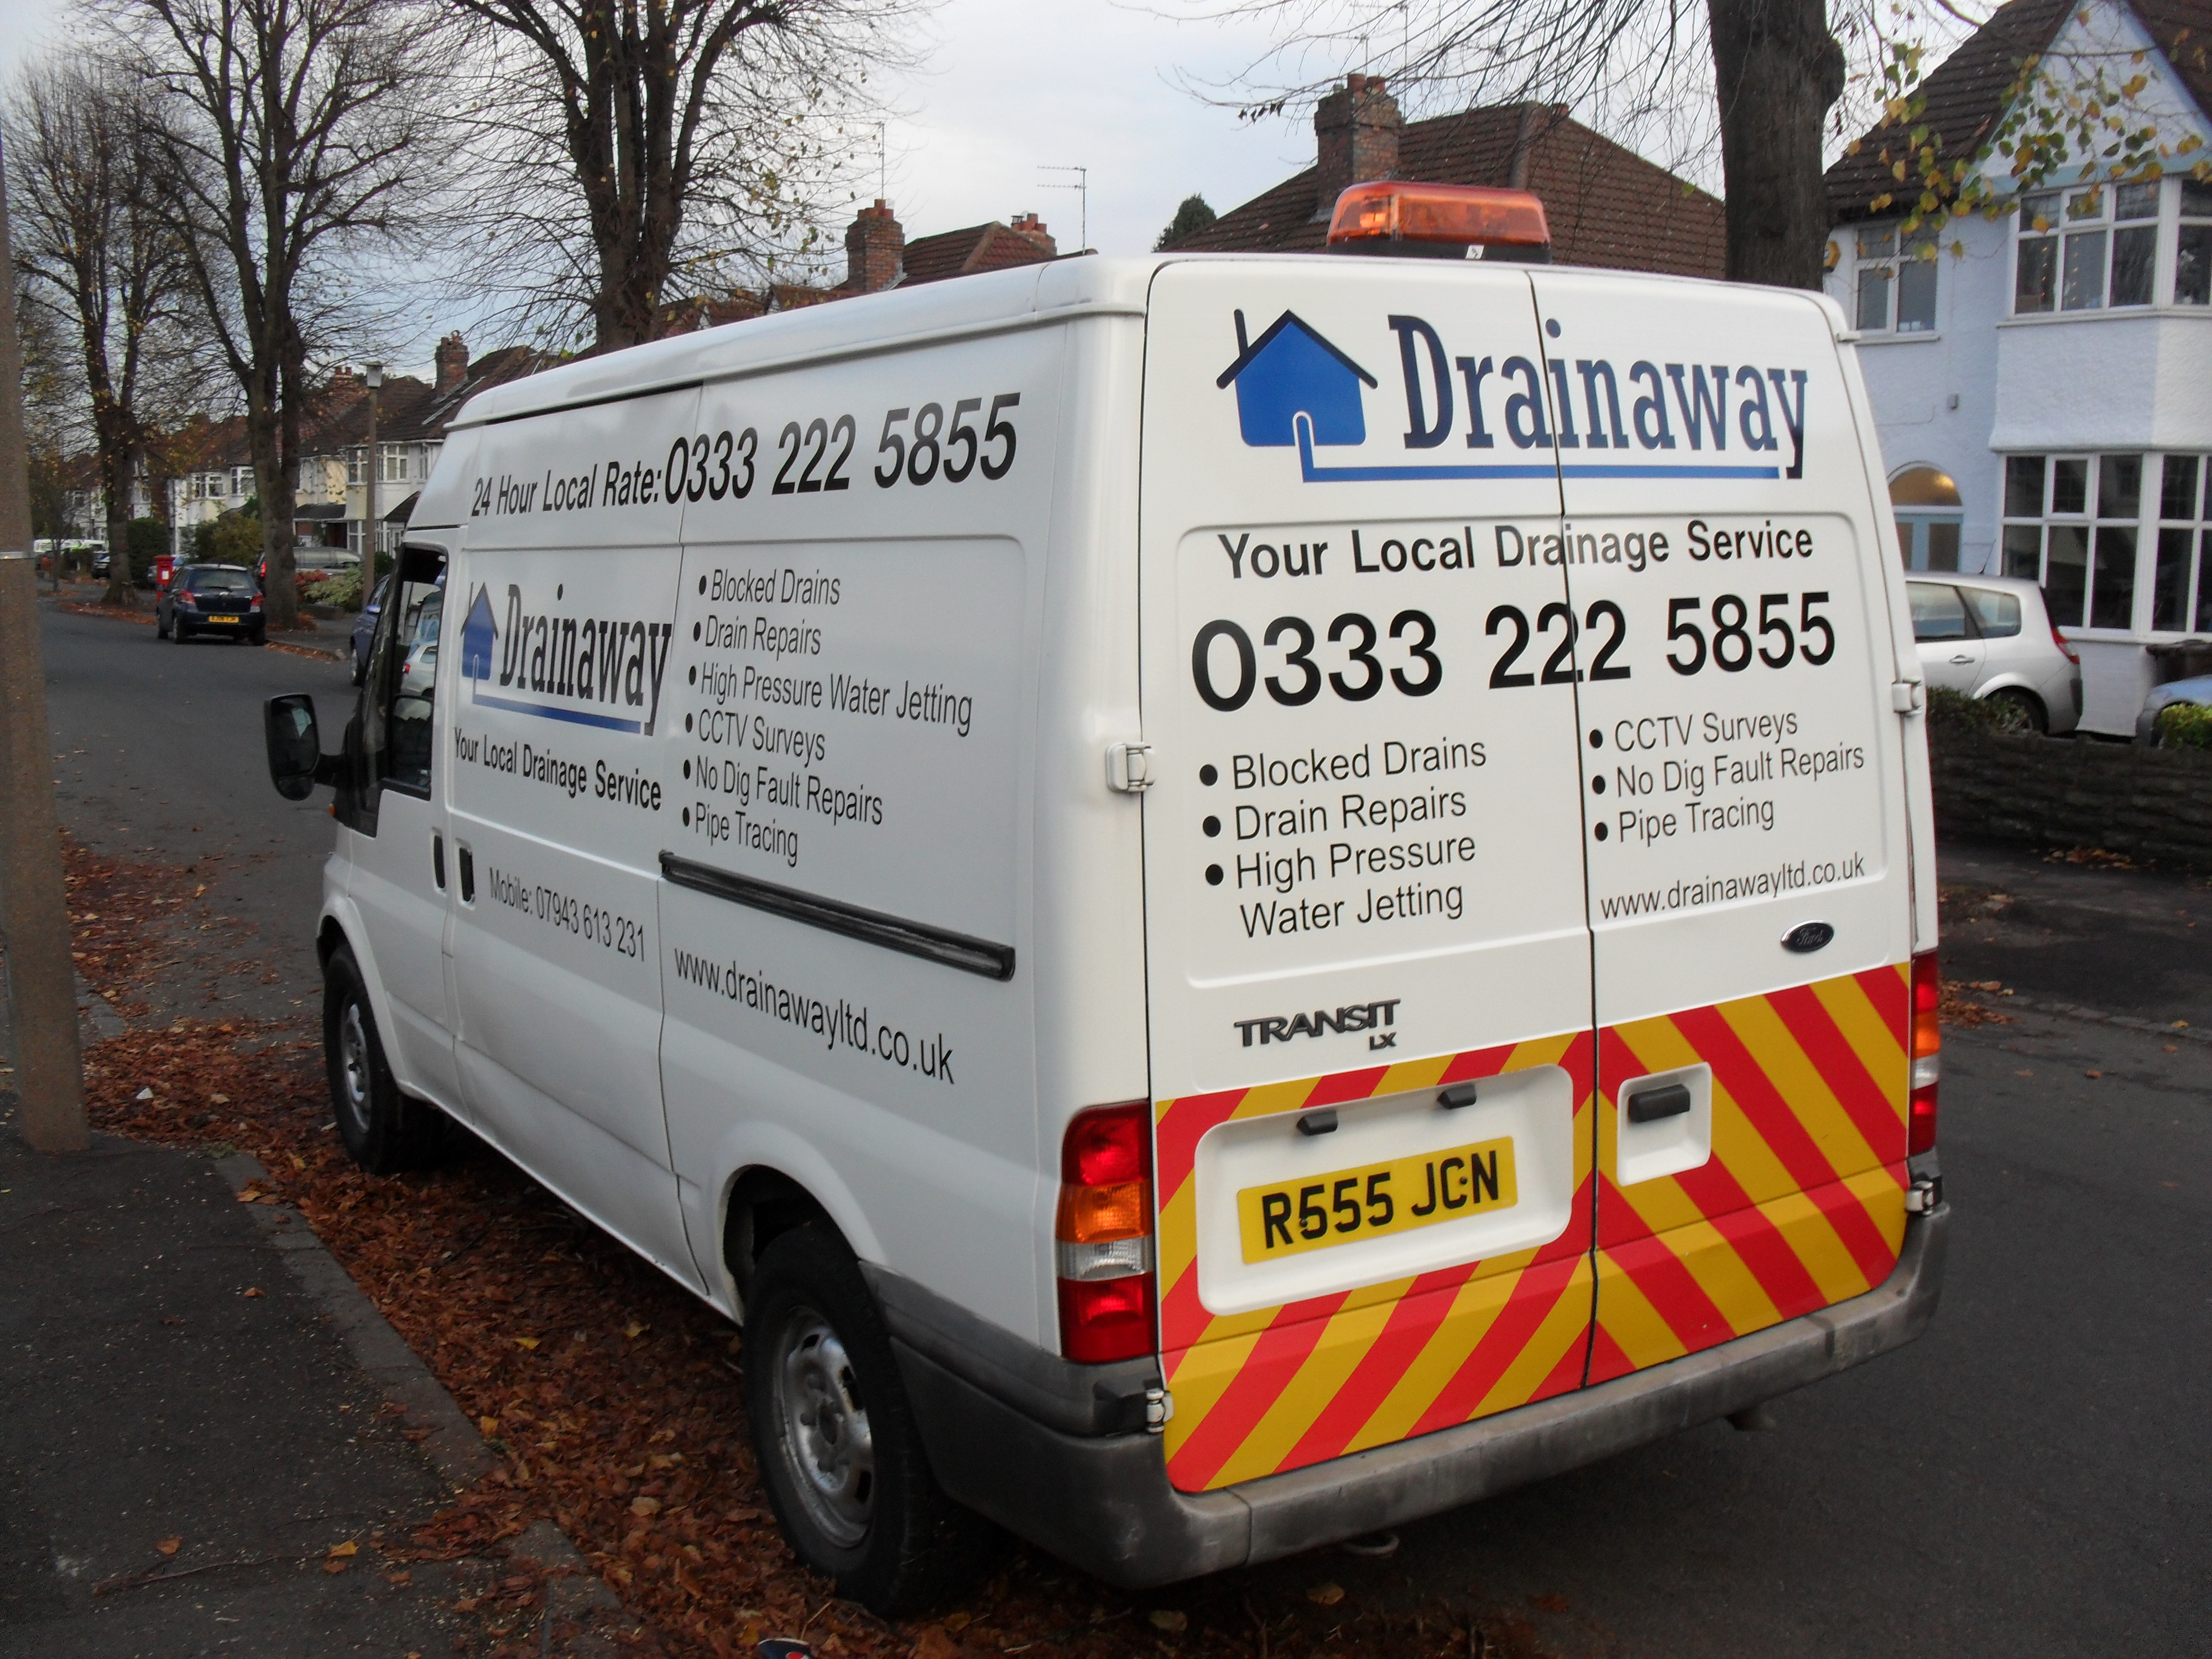 Your Local Drainage Service